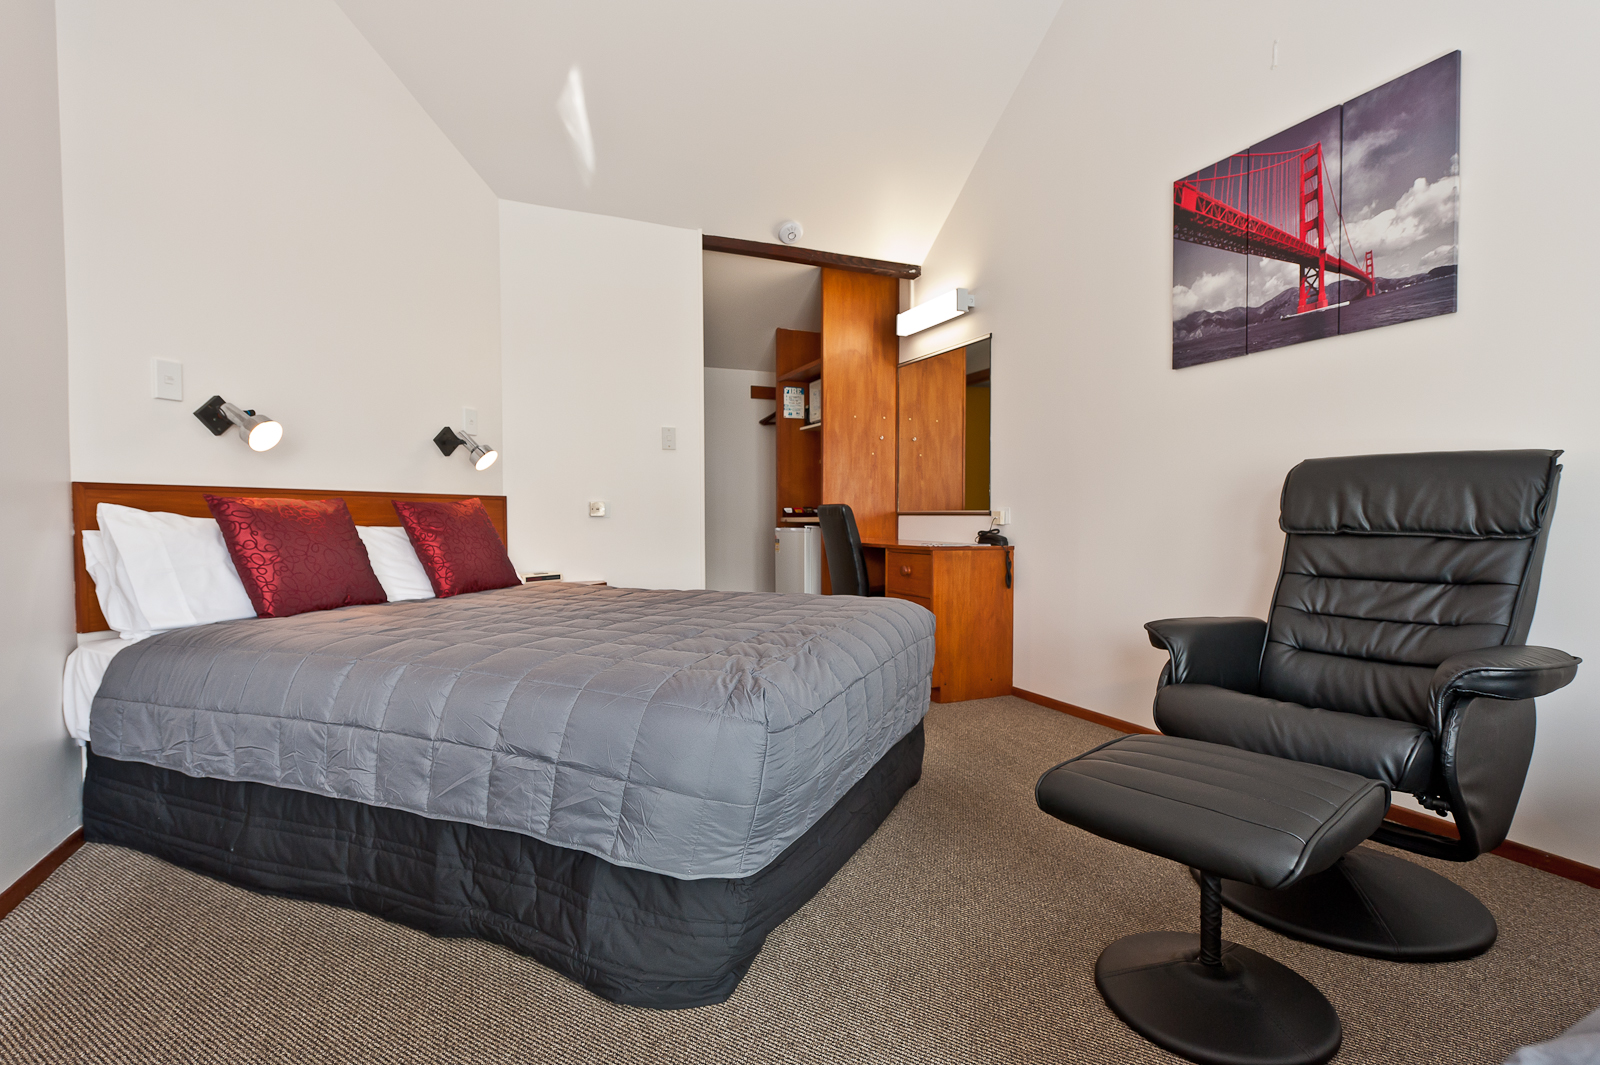 Studio Apartment Queen Bed accommodation | amenities | location | wanganui | contact |